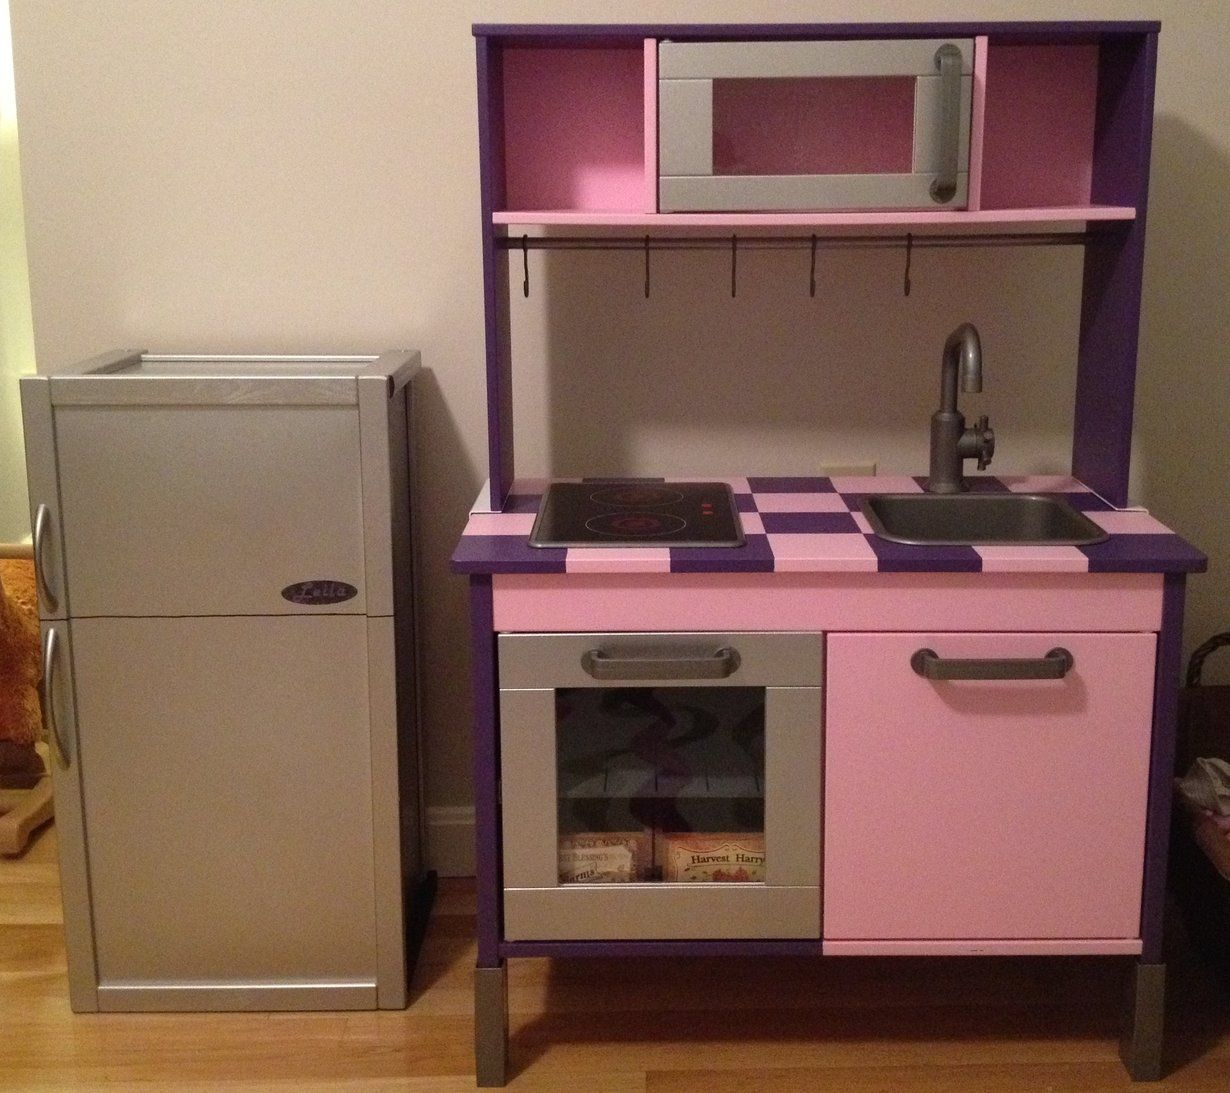 duktig kitchen goes from bland to bling ikea hacks. Black Bedroom Furniture Sets. Home Design Ideas